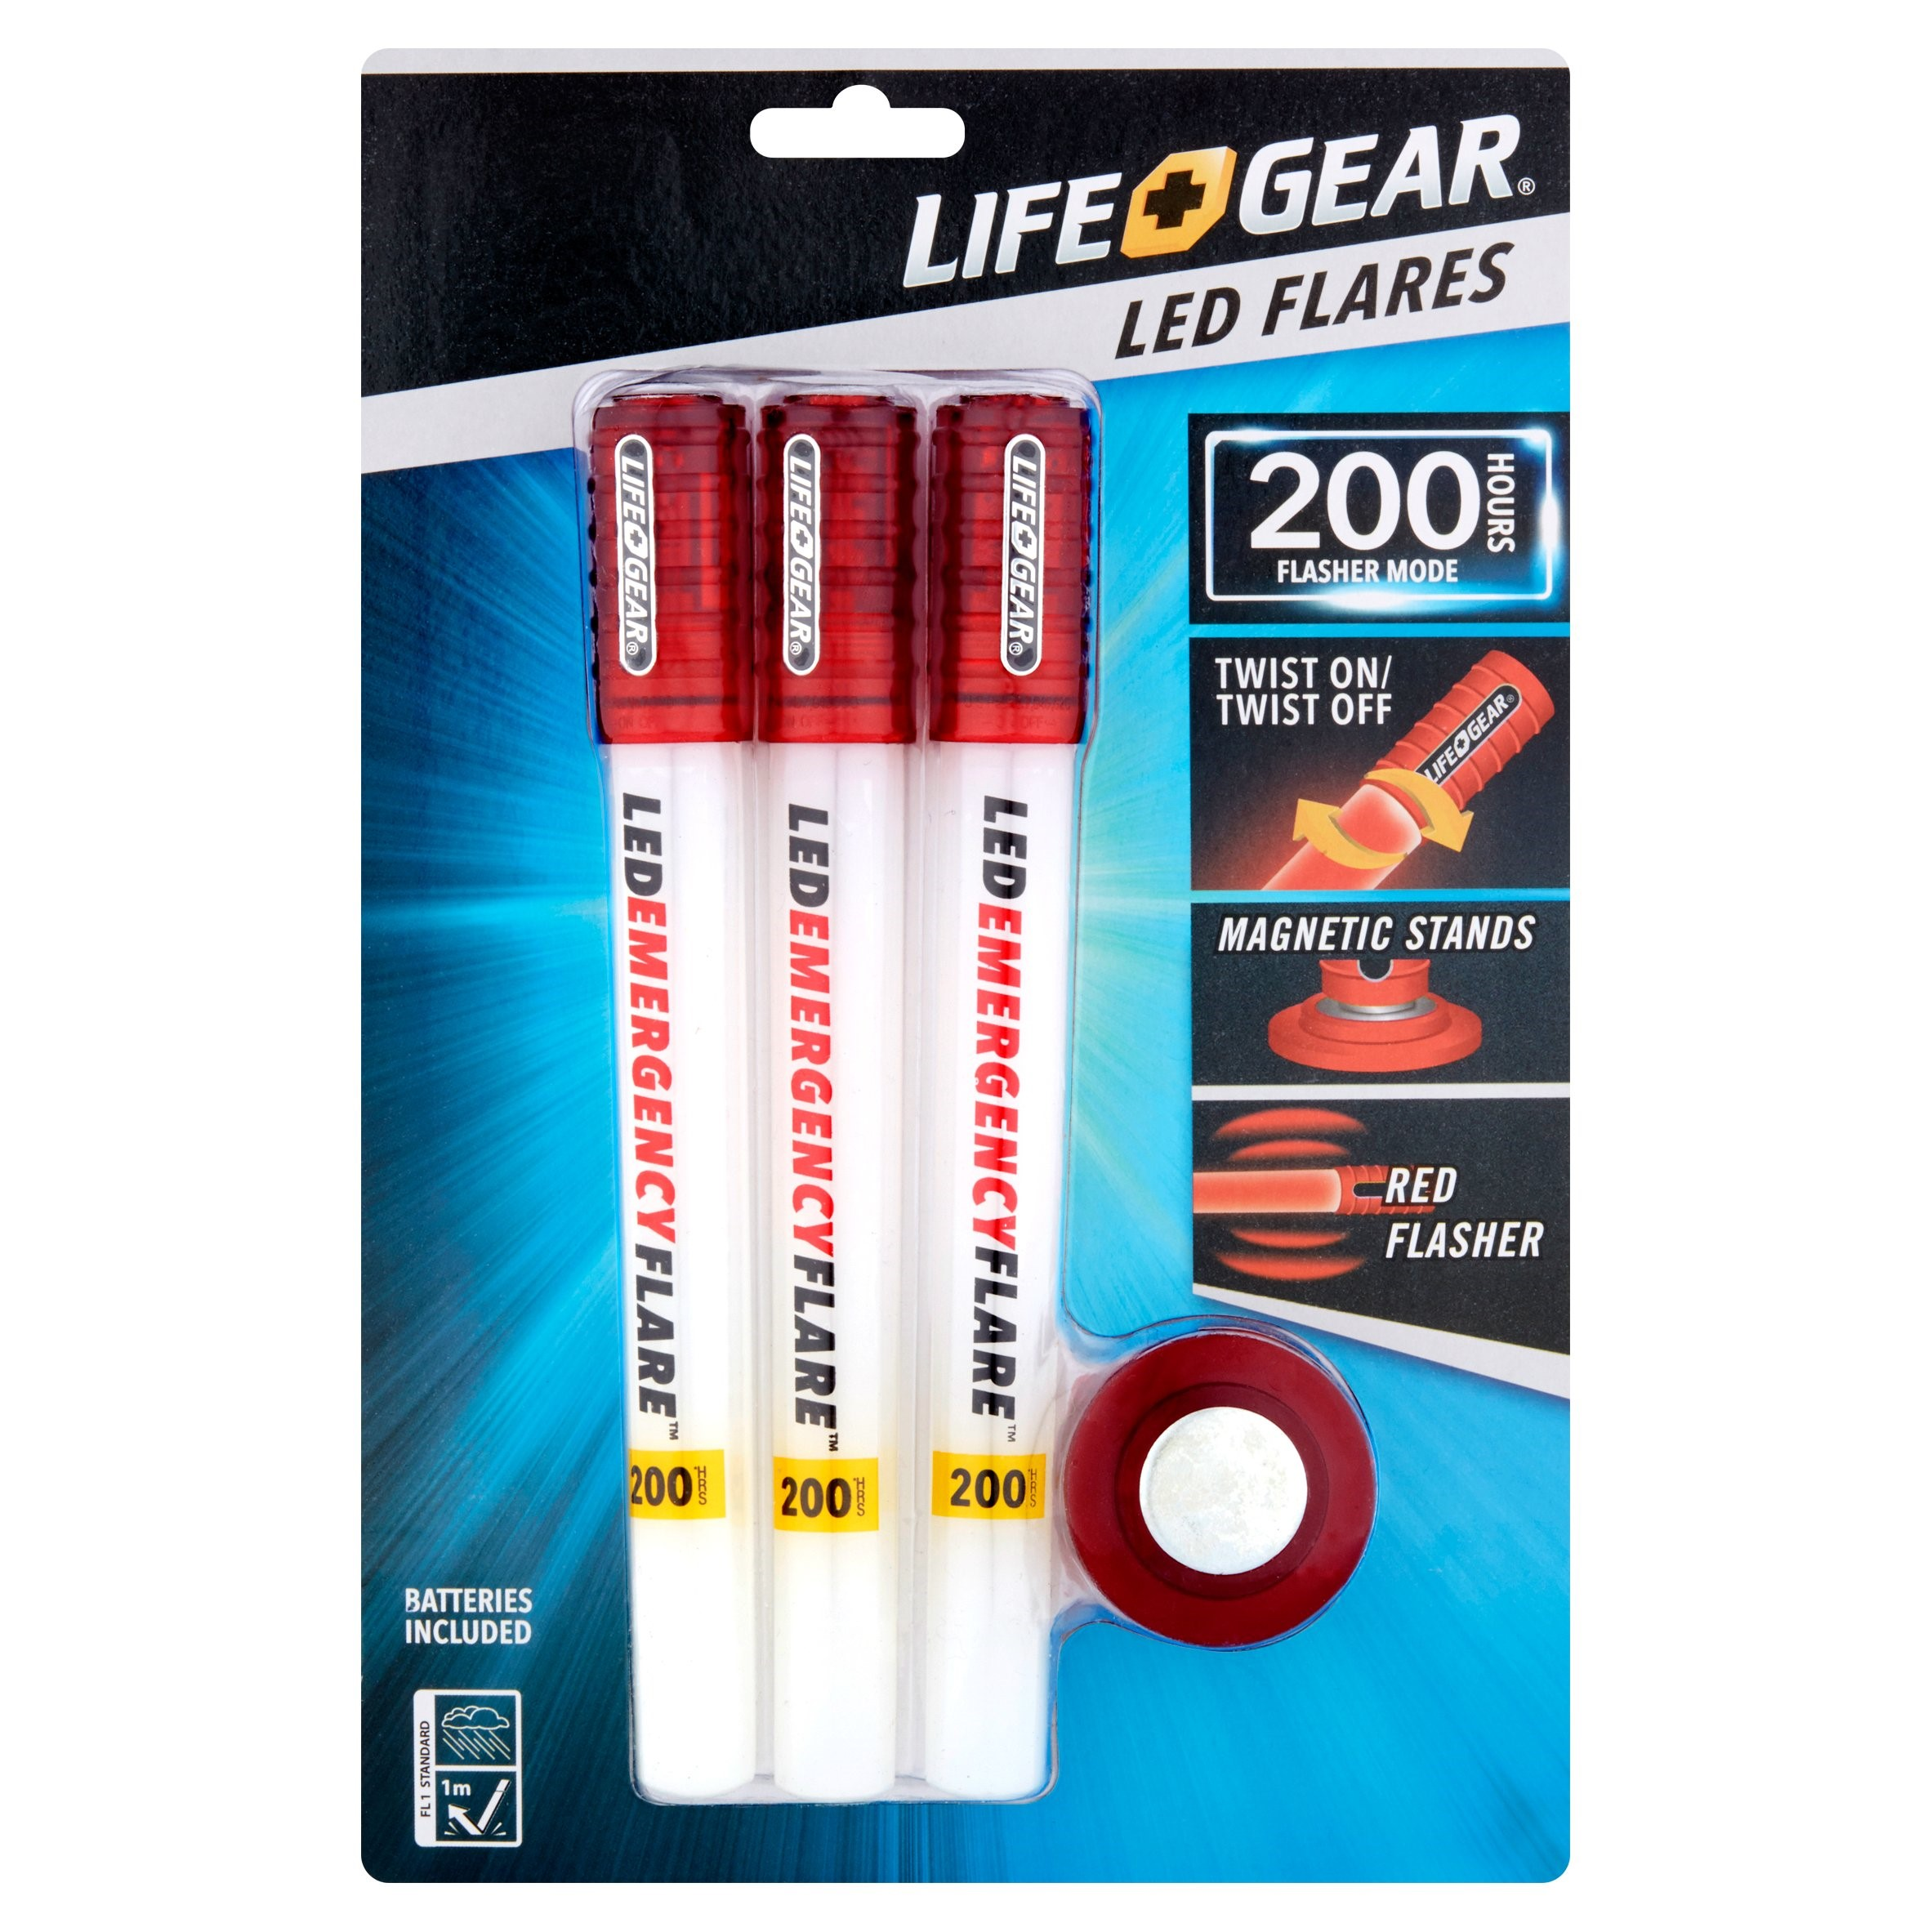 Life Gear LED Flares